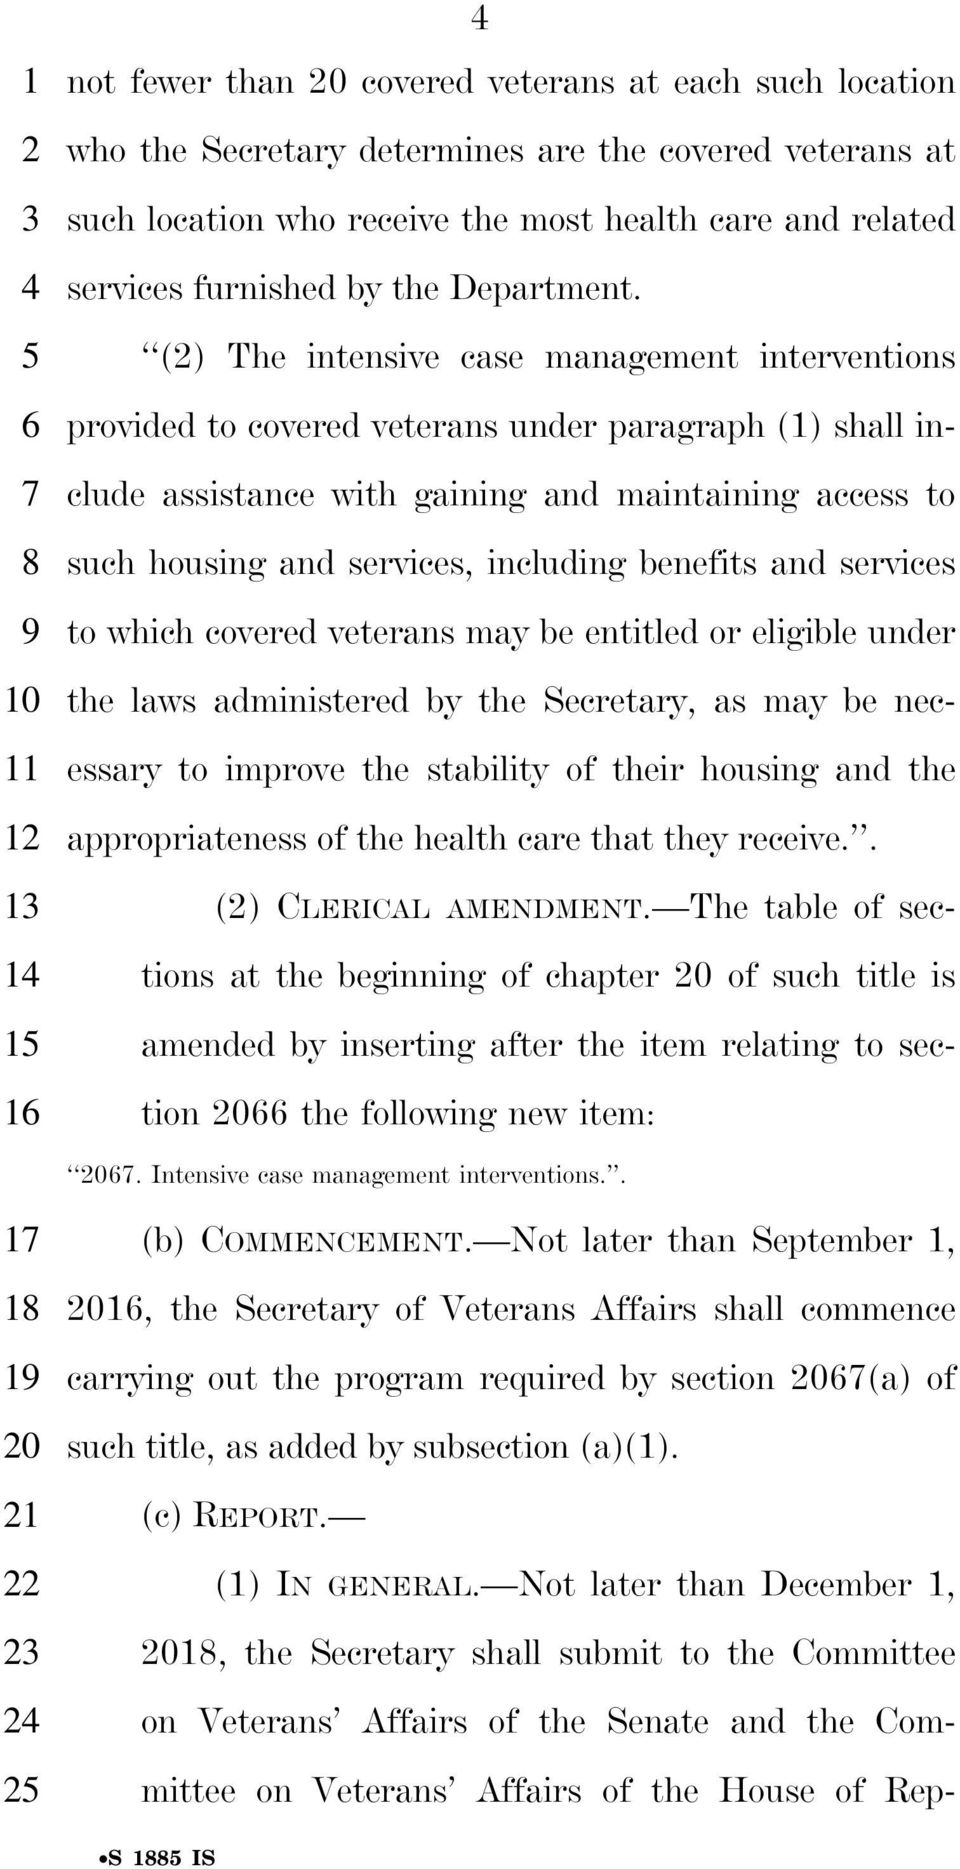 () The intensive case management interventions provided to covered veterans under paragraph (1) shall include assistance with gaining and maintaining access to such housing and services, including